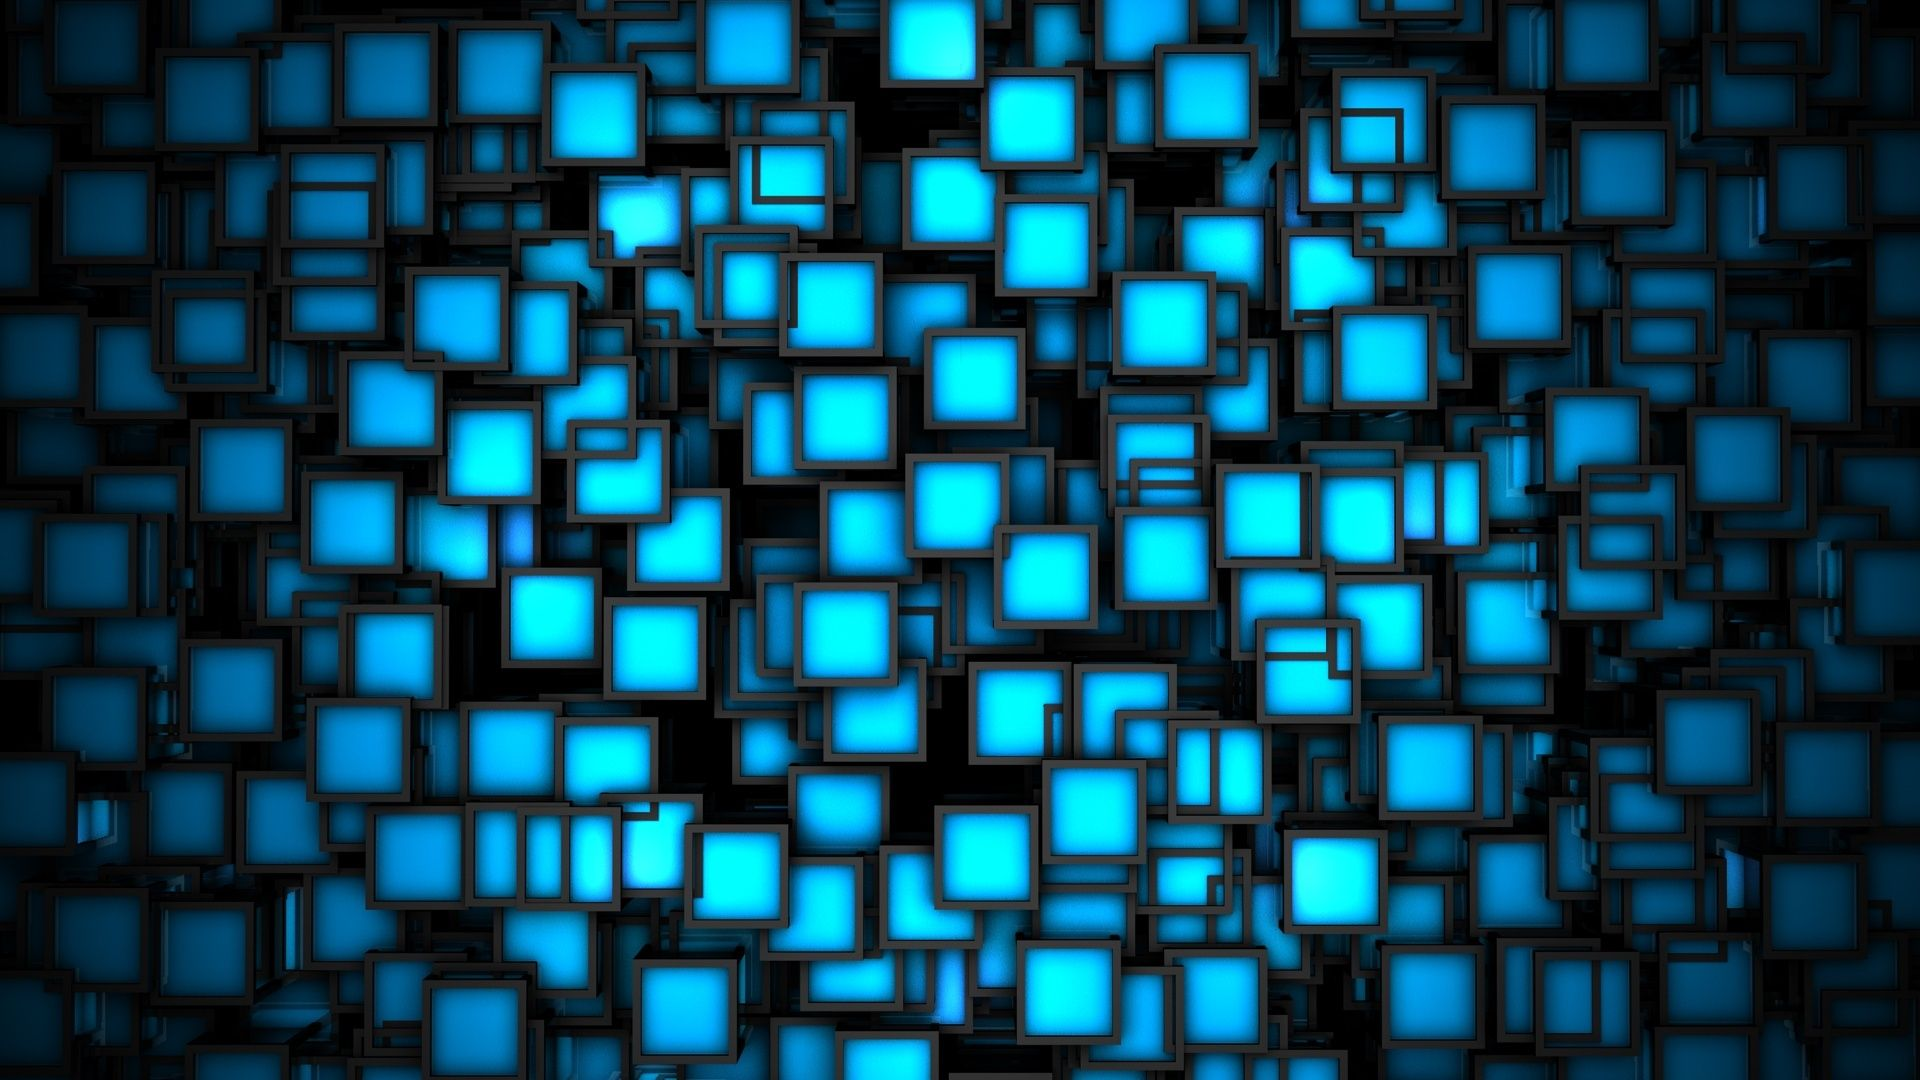 hd 3d wallpaper - blue cubes | wild about blue | pinterest